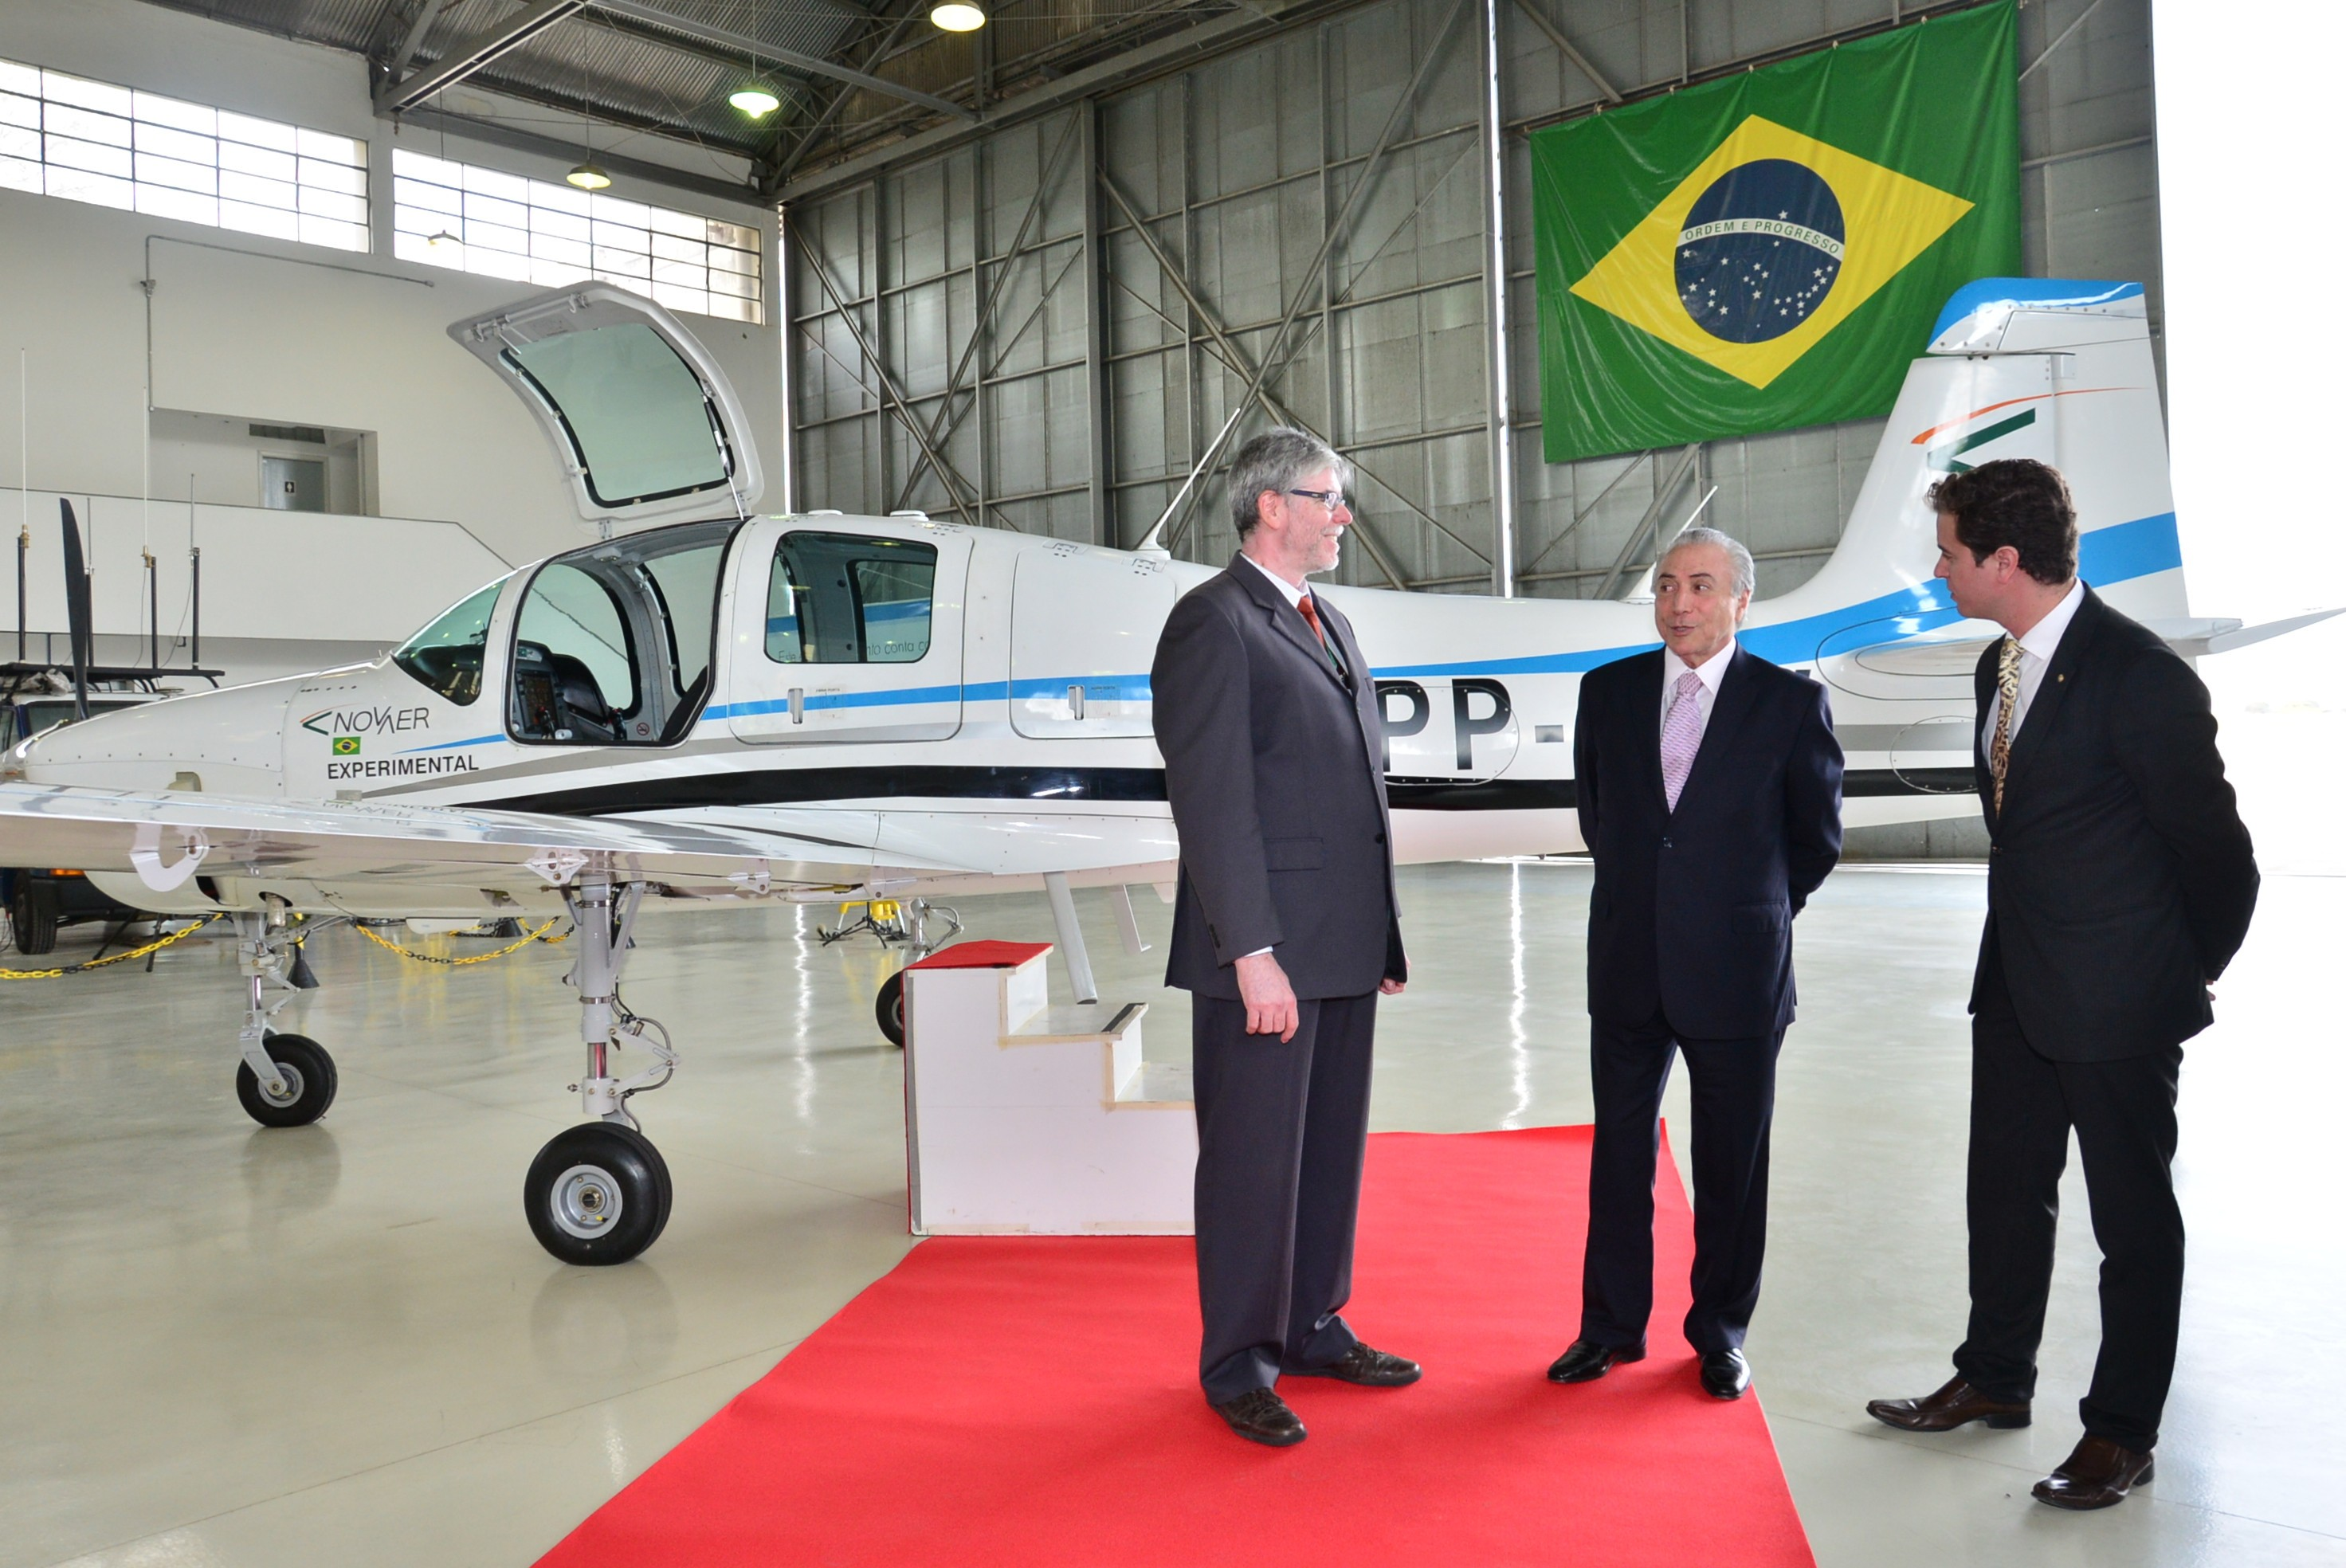 Mr Michel Temer visits Novaer's T-Xc aircraft Prototype